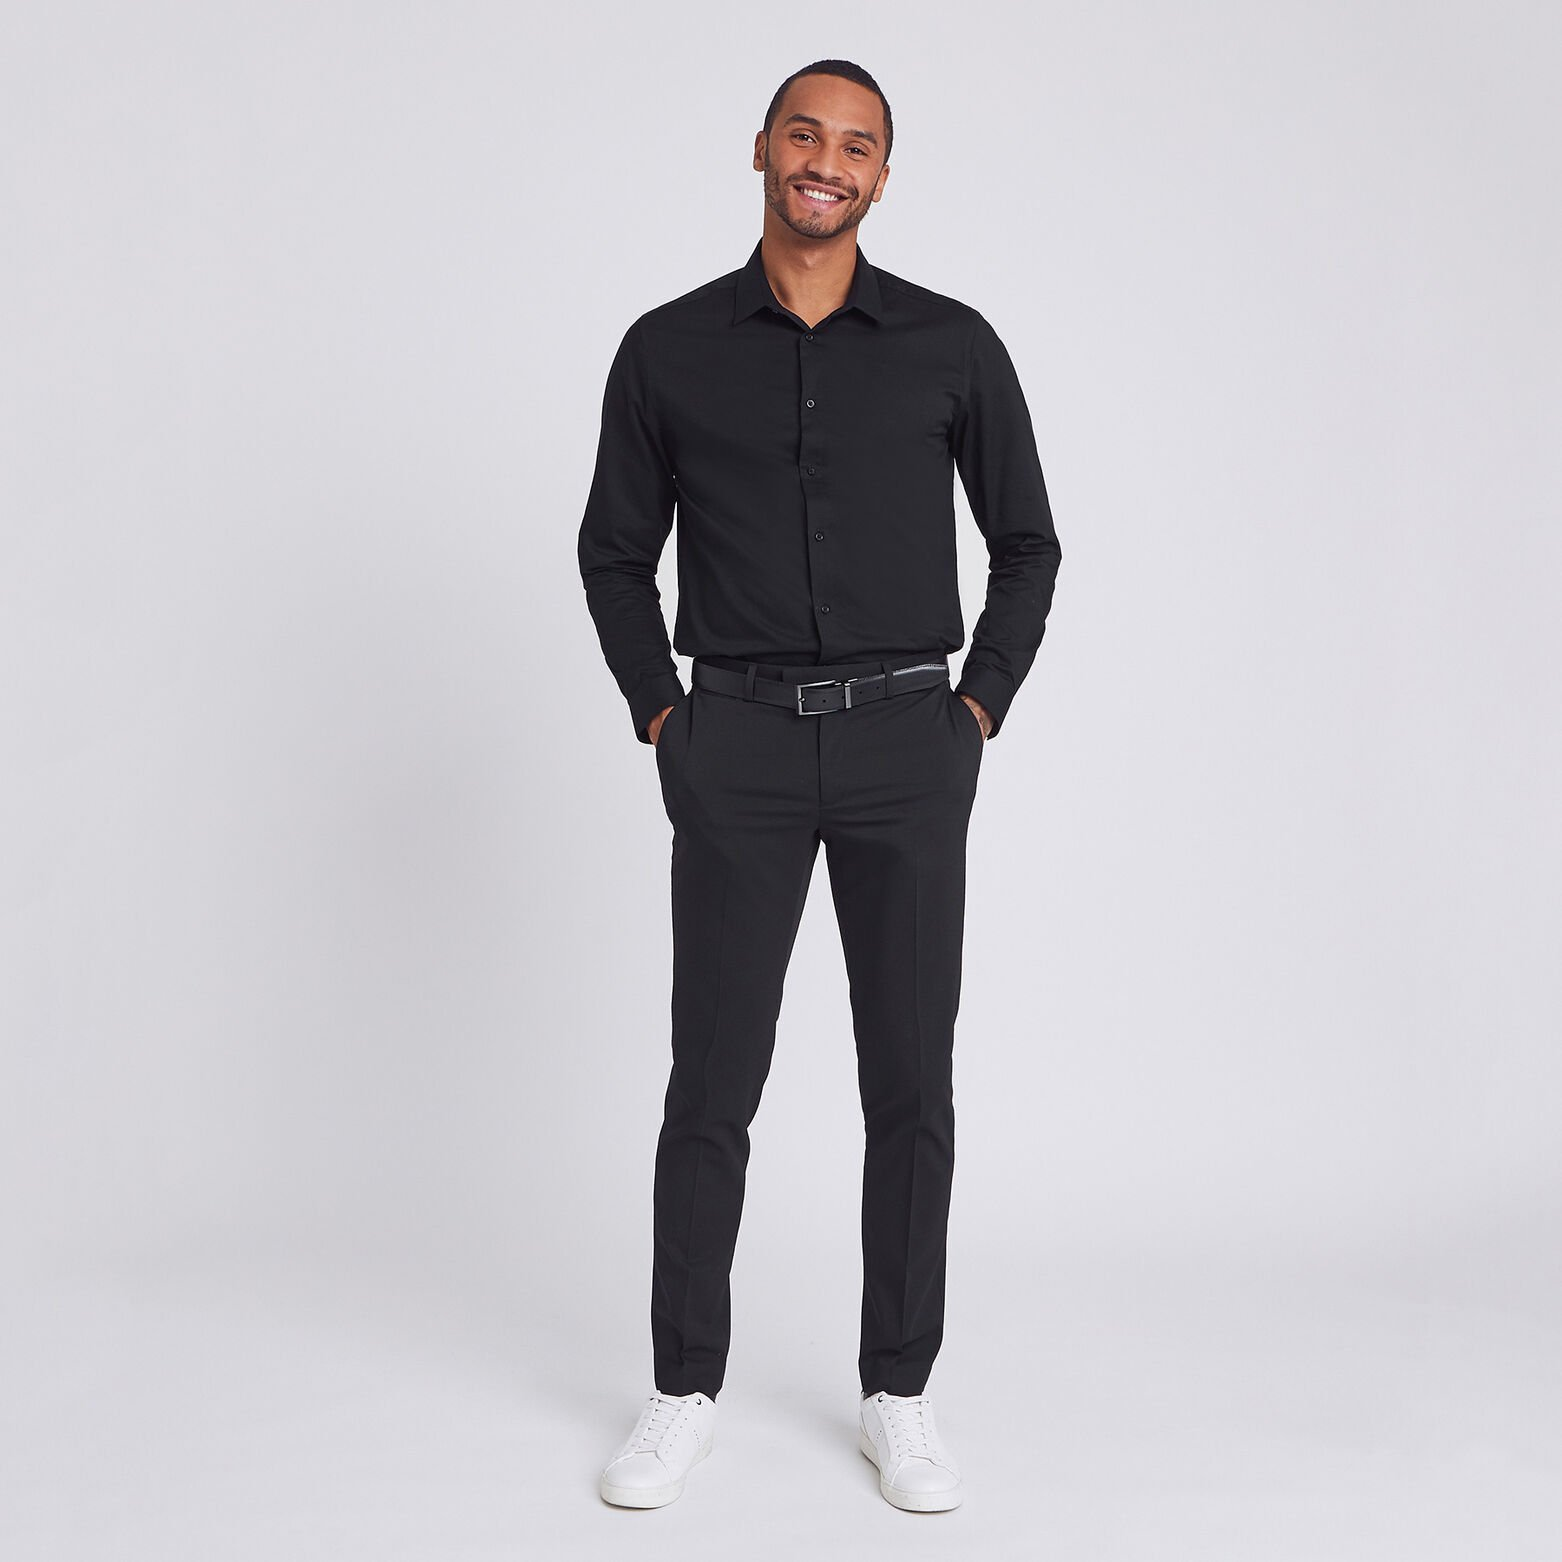 Chemise slim repassage facile Stay black/white cot